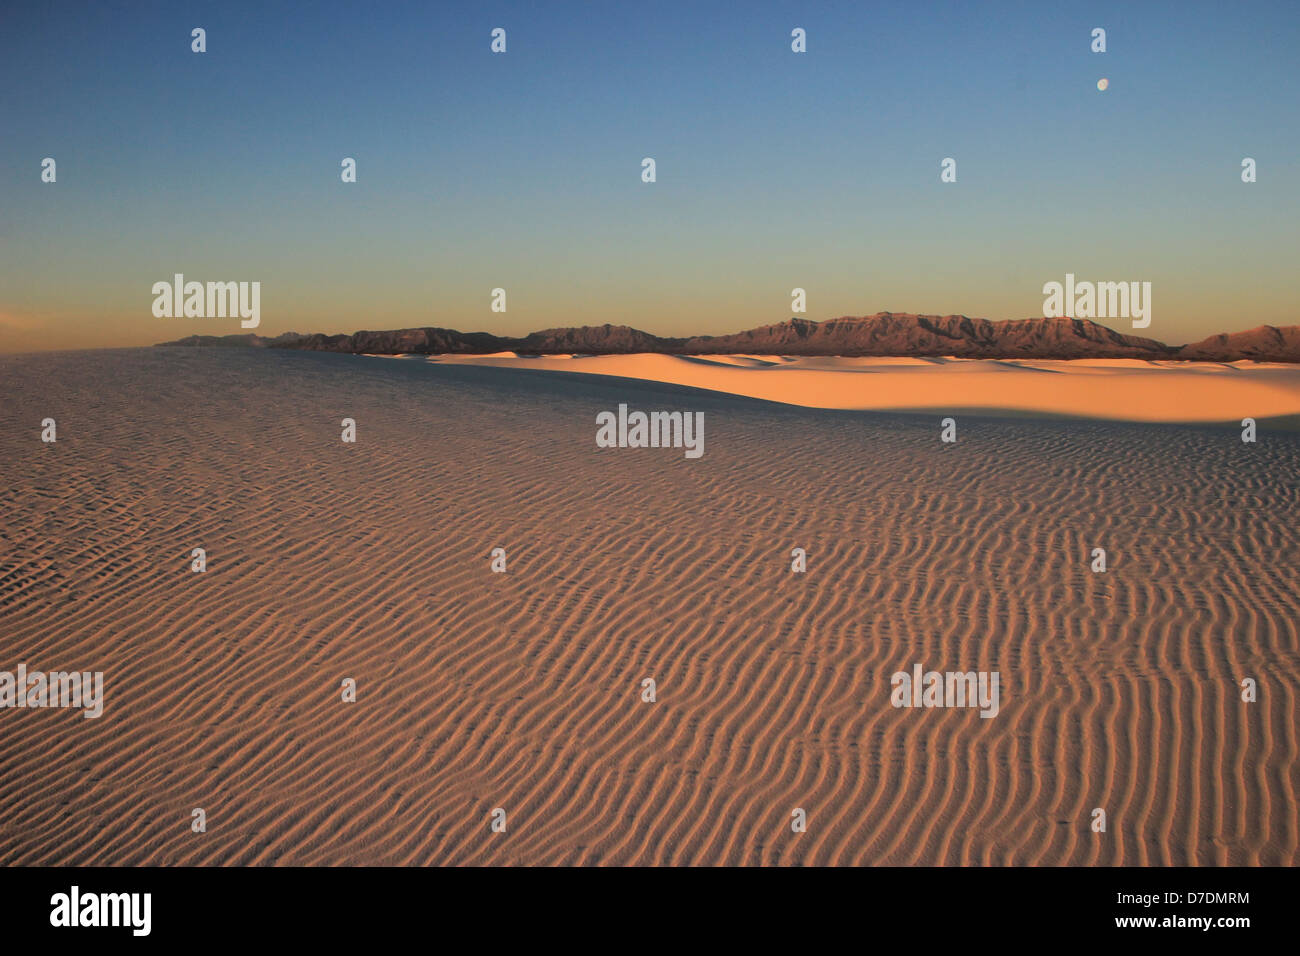 White Sands National Monument at sunset, New Mexico, USA - Stock Image